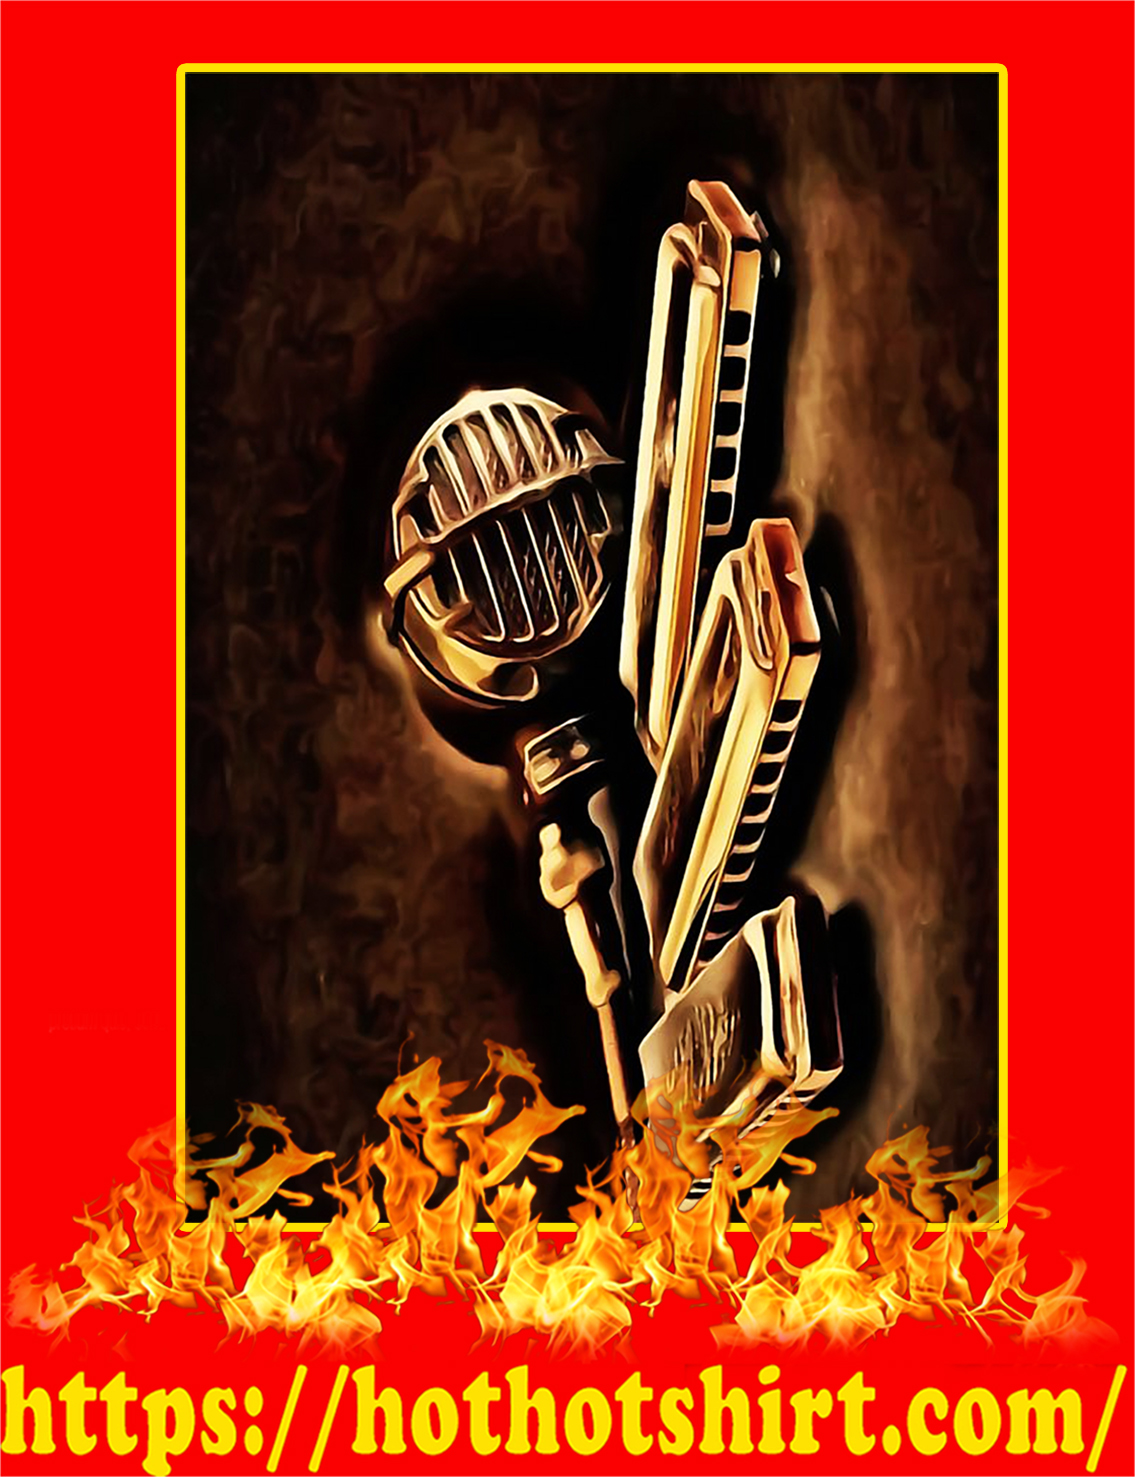 Harmonica Vintage Poster - A2